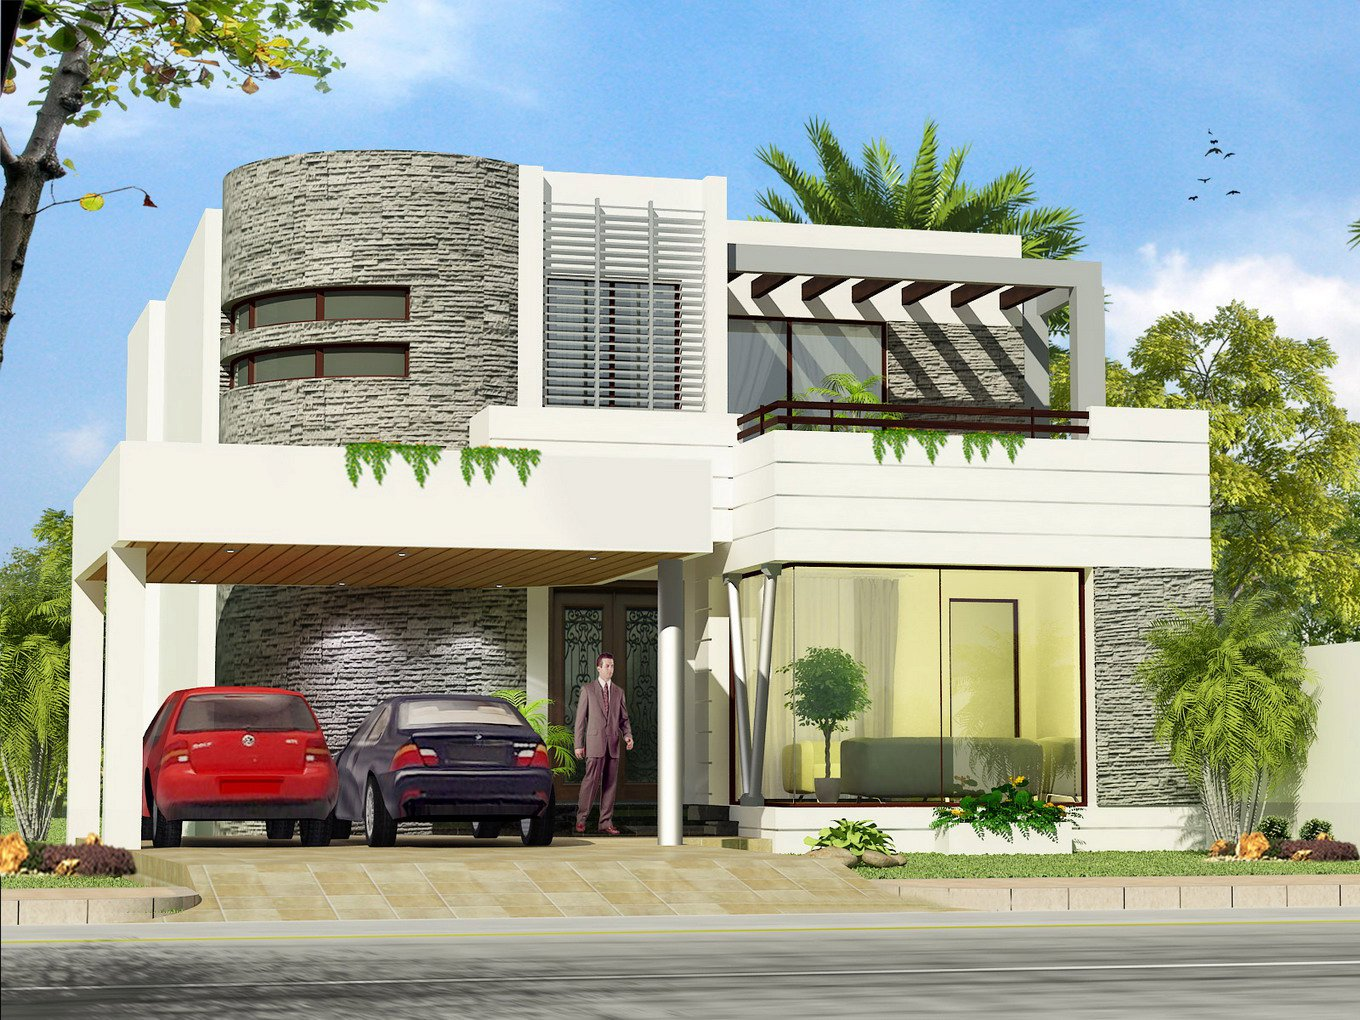 New home designs latest modern homes beautiful latest Pictures of exterior home designs in india